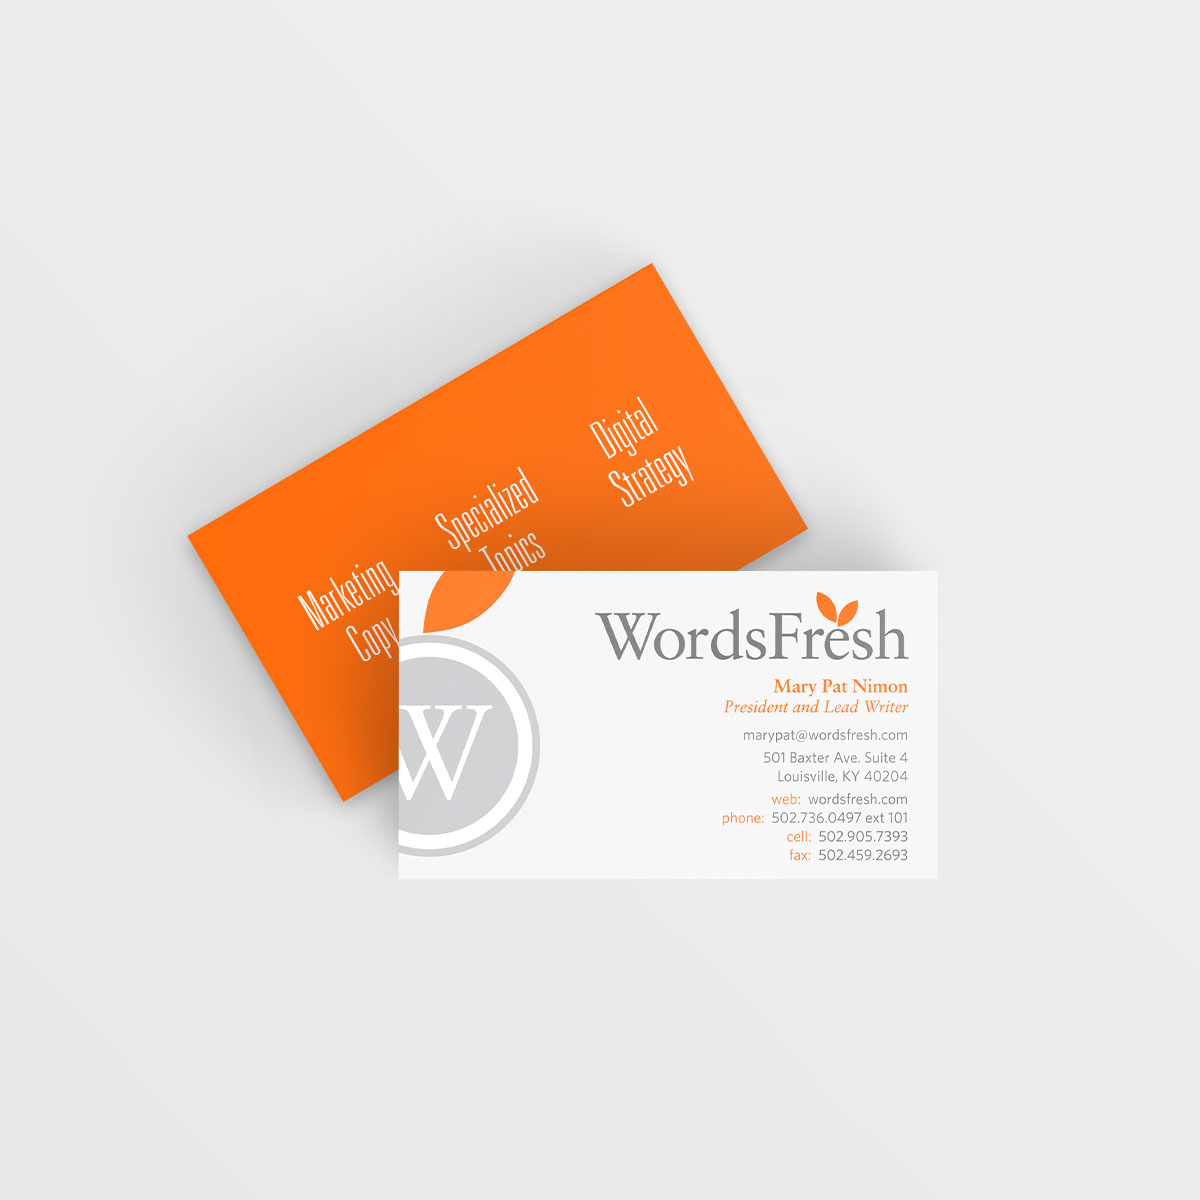 WordsFresh-Business-Card